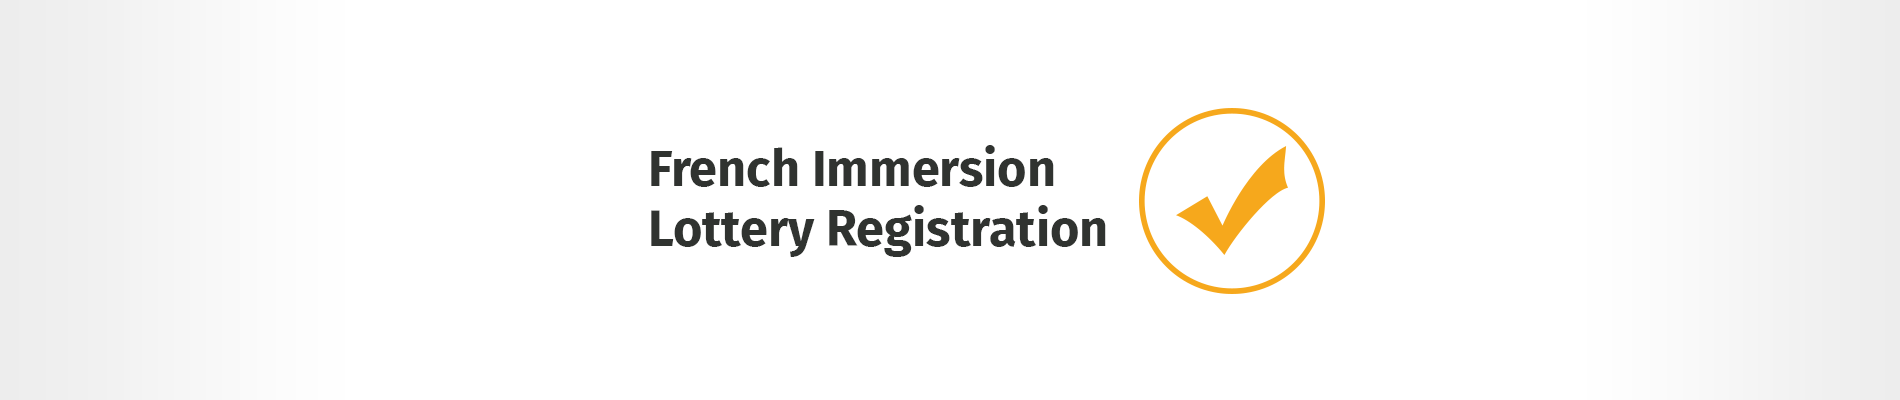 French Immersion Lottery